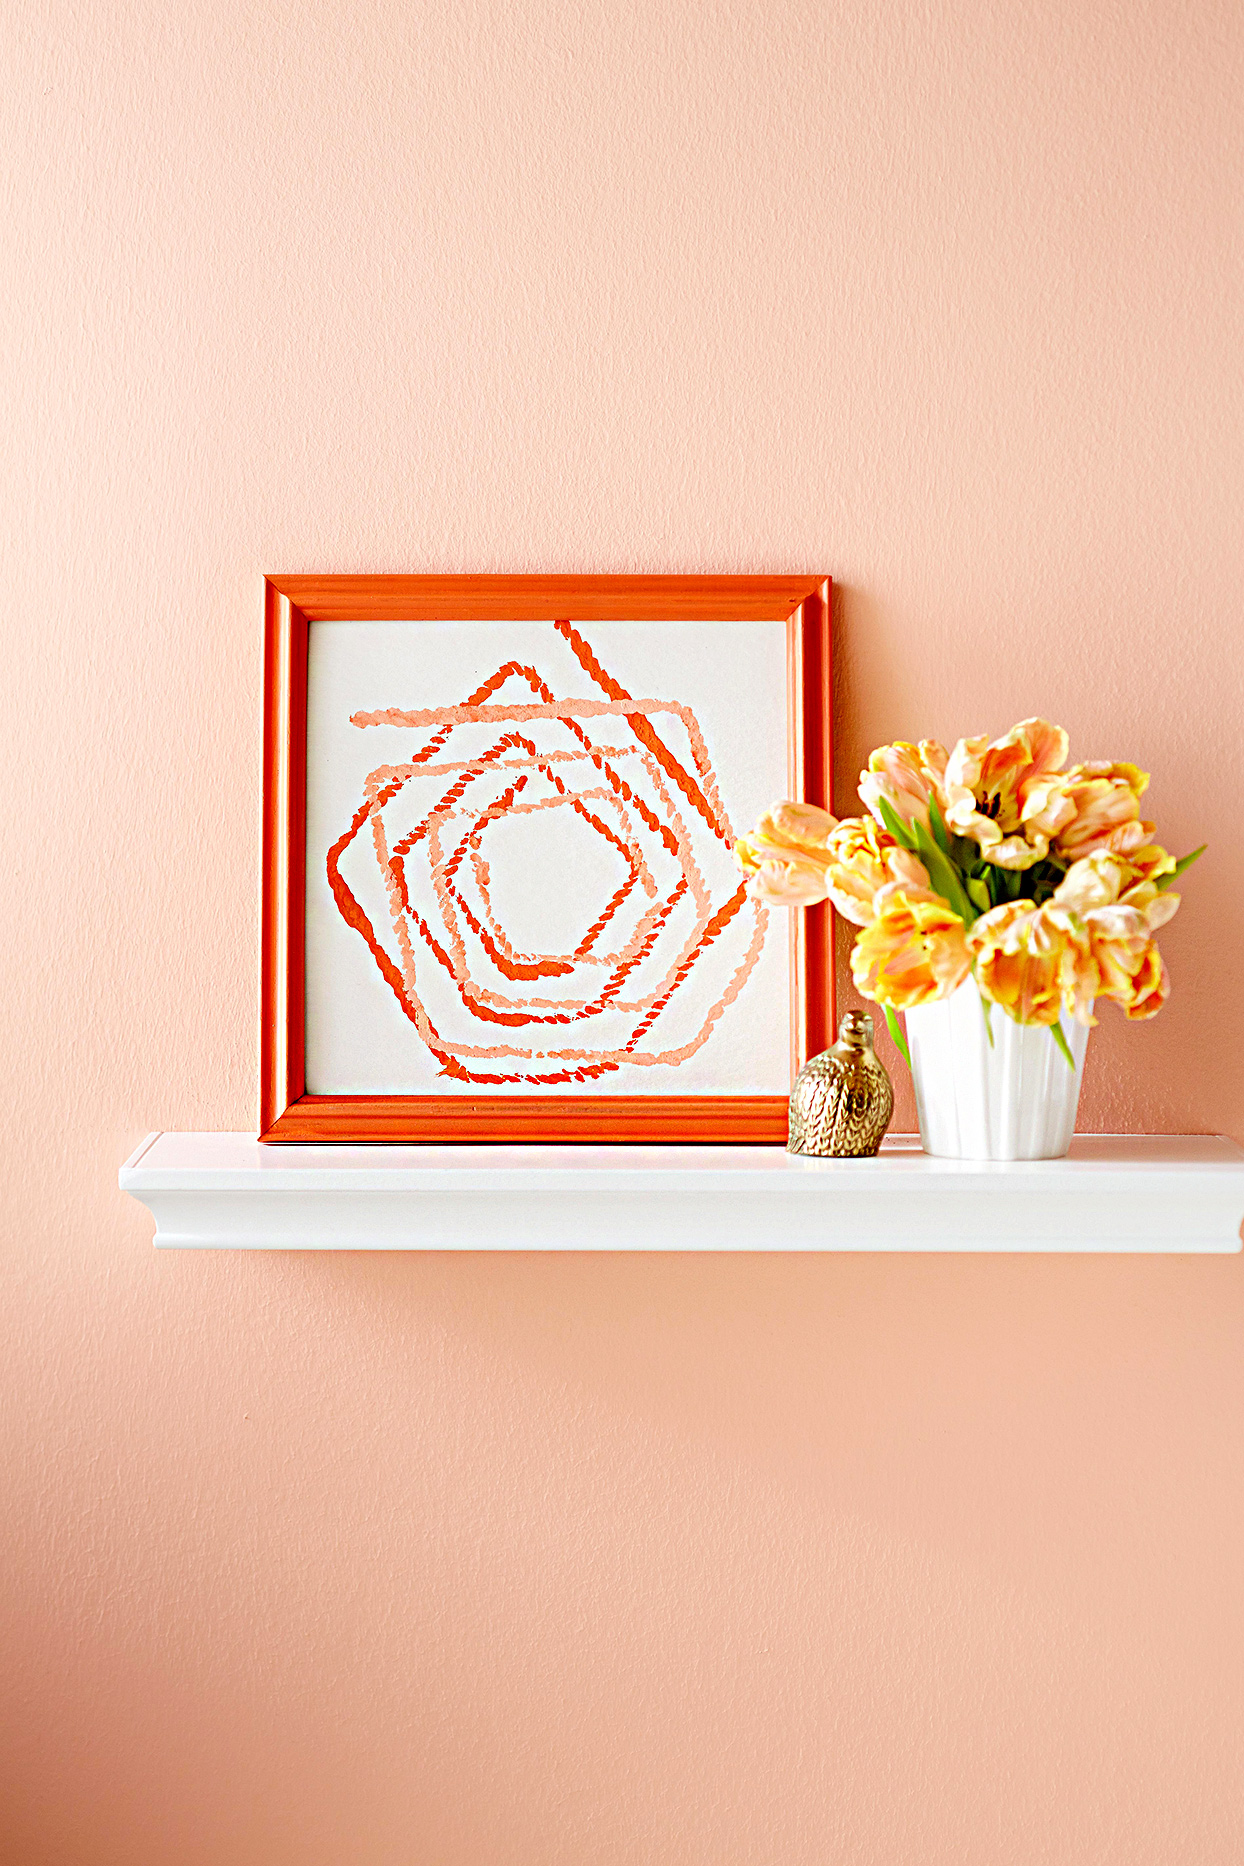 Shelf with orange stamp art